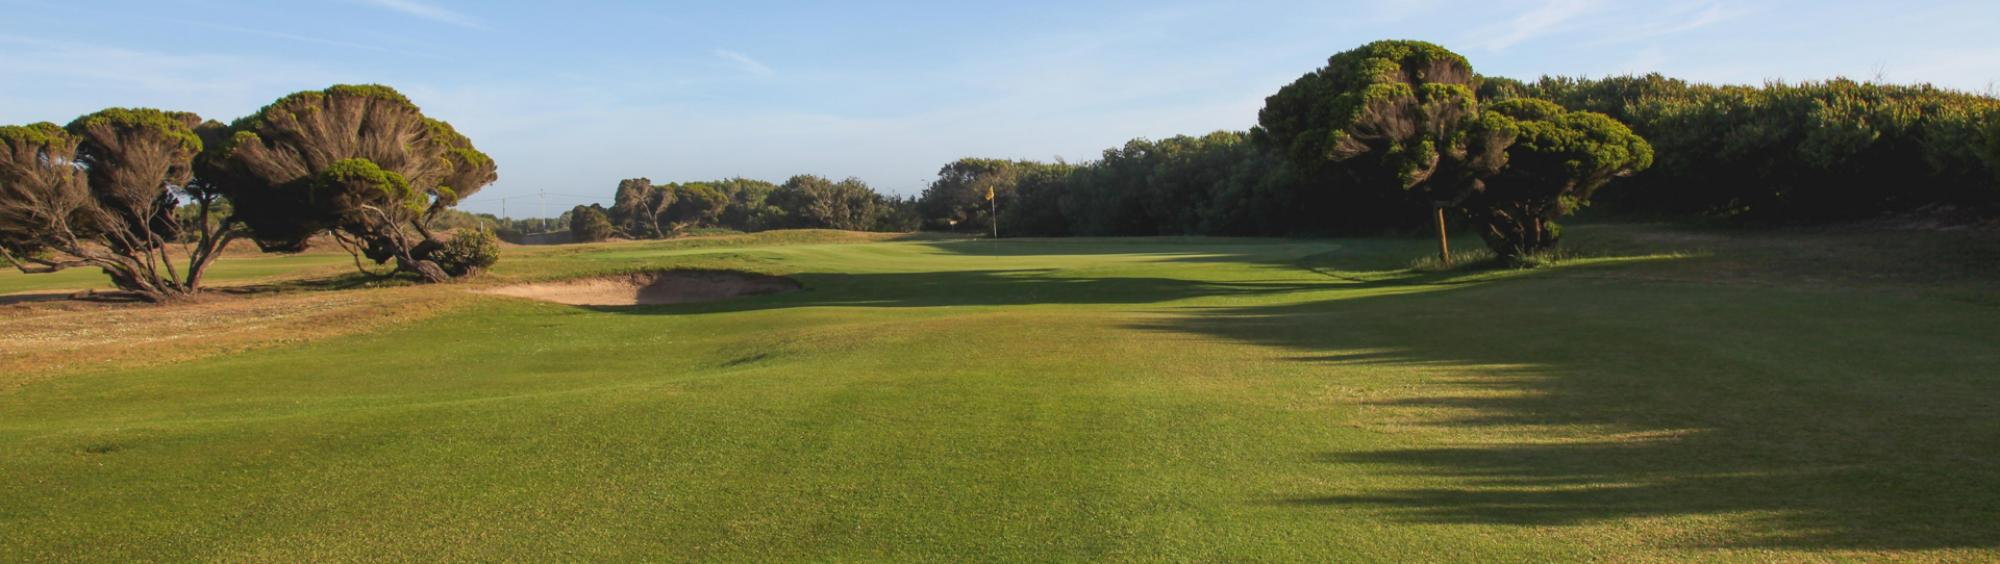 The Oporto Golf Club's picturesque green situated in incredible Porto.